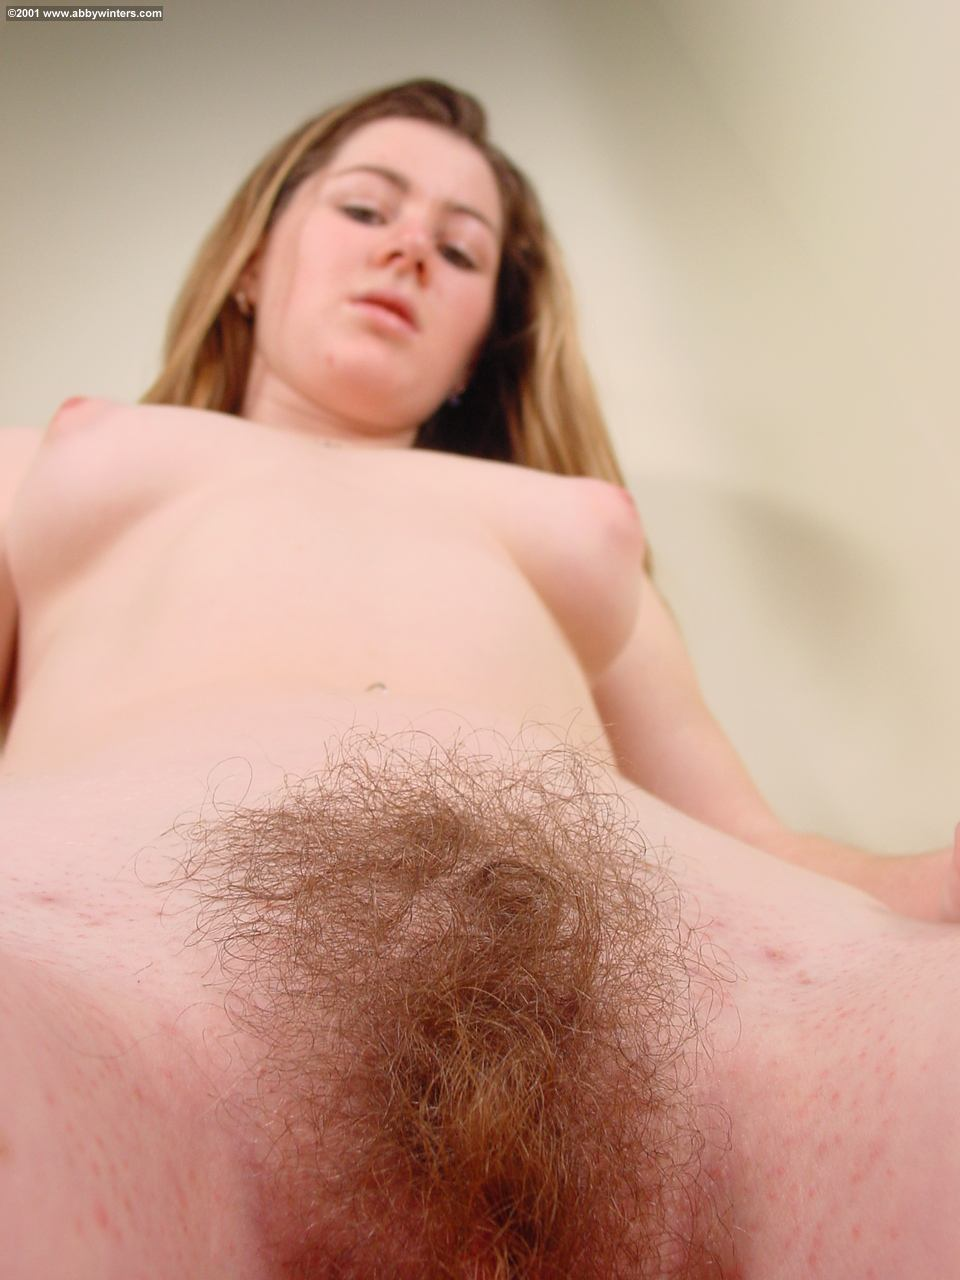 winters abby Amateur hairy girl